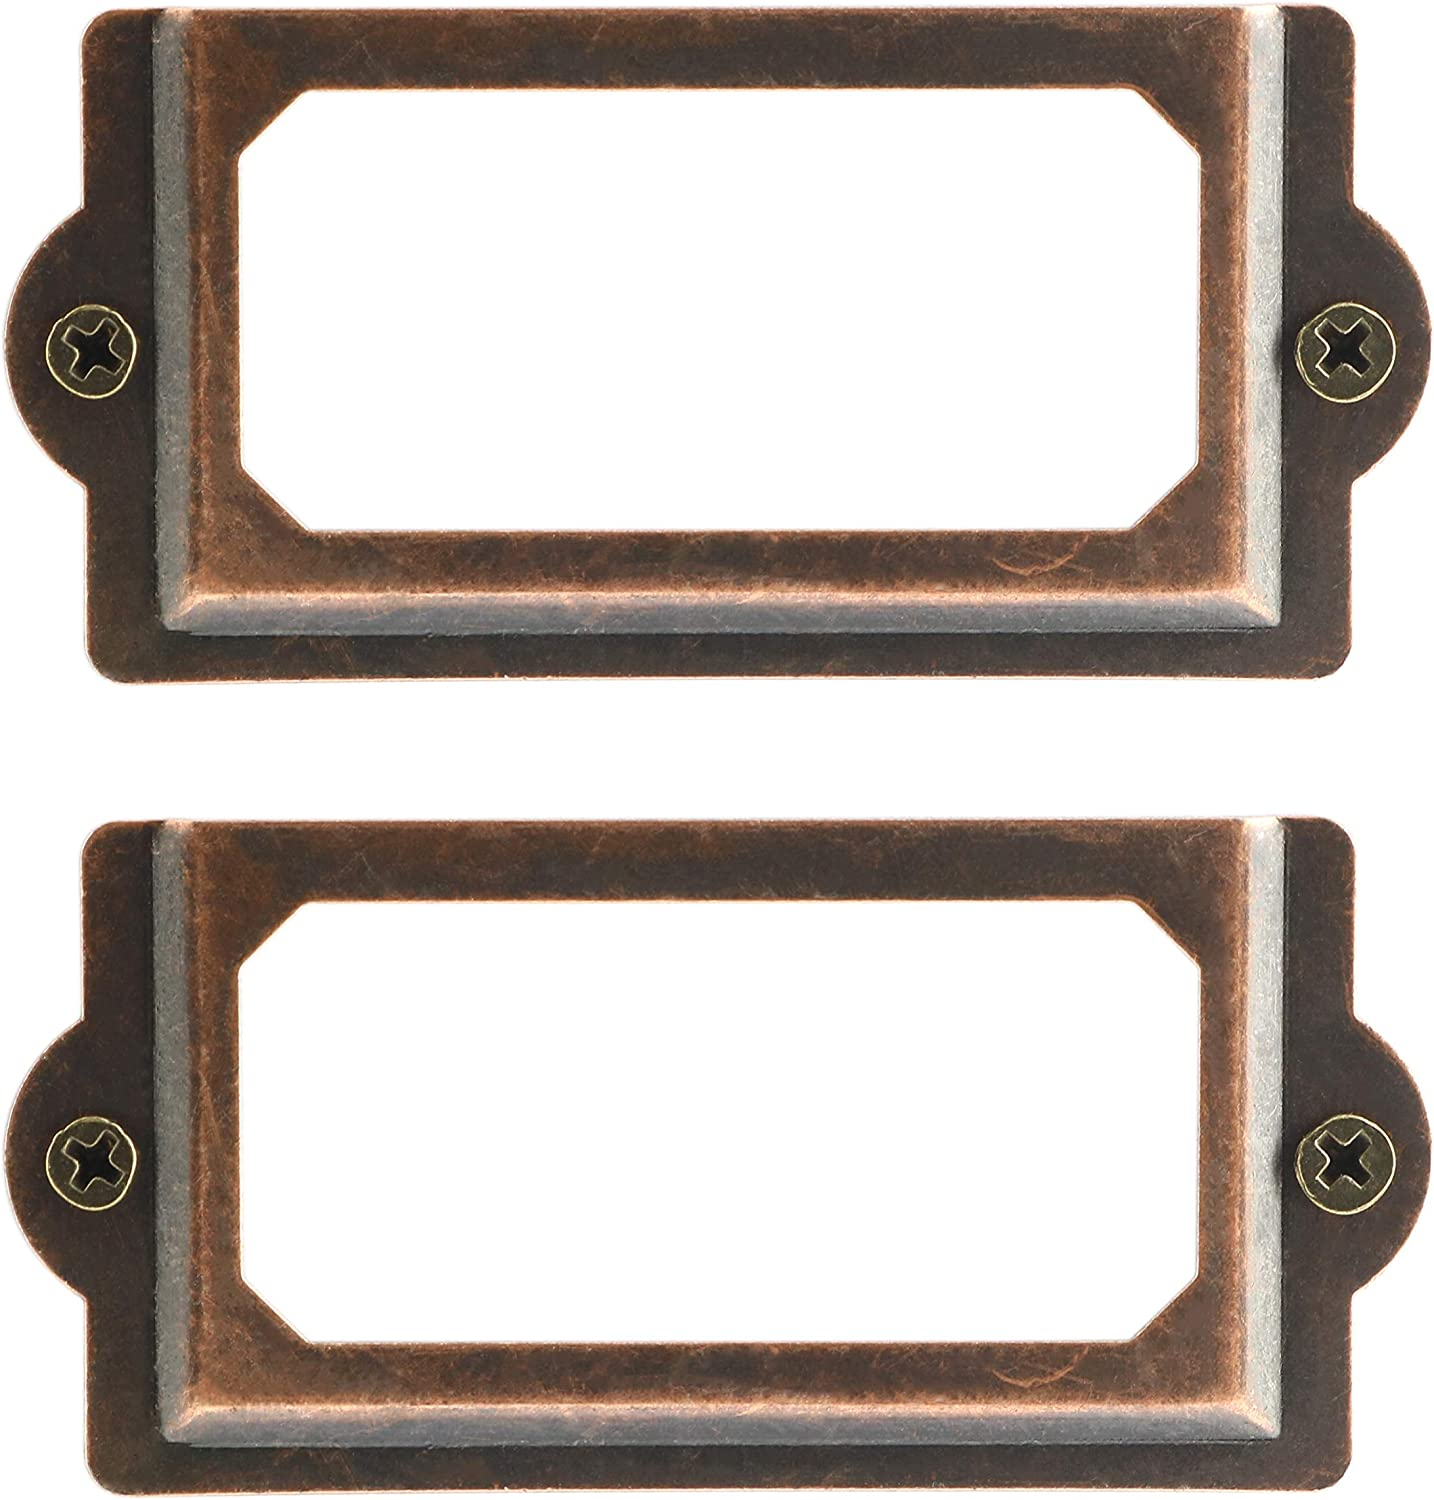 10pcs Iron 70x33mm Drawer Label Frame Card Holder for Cabinets Drawers Cases